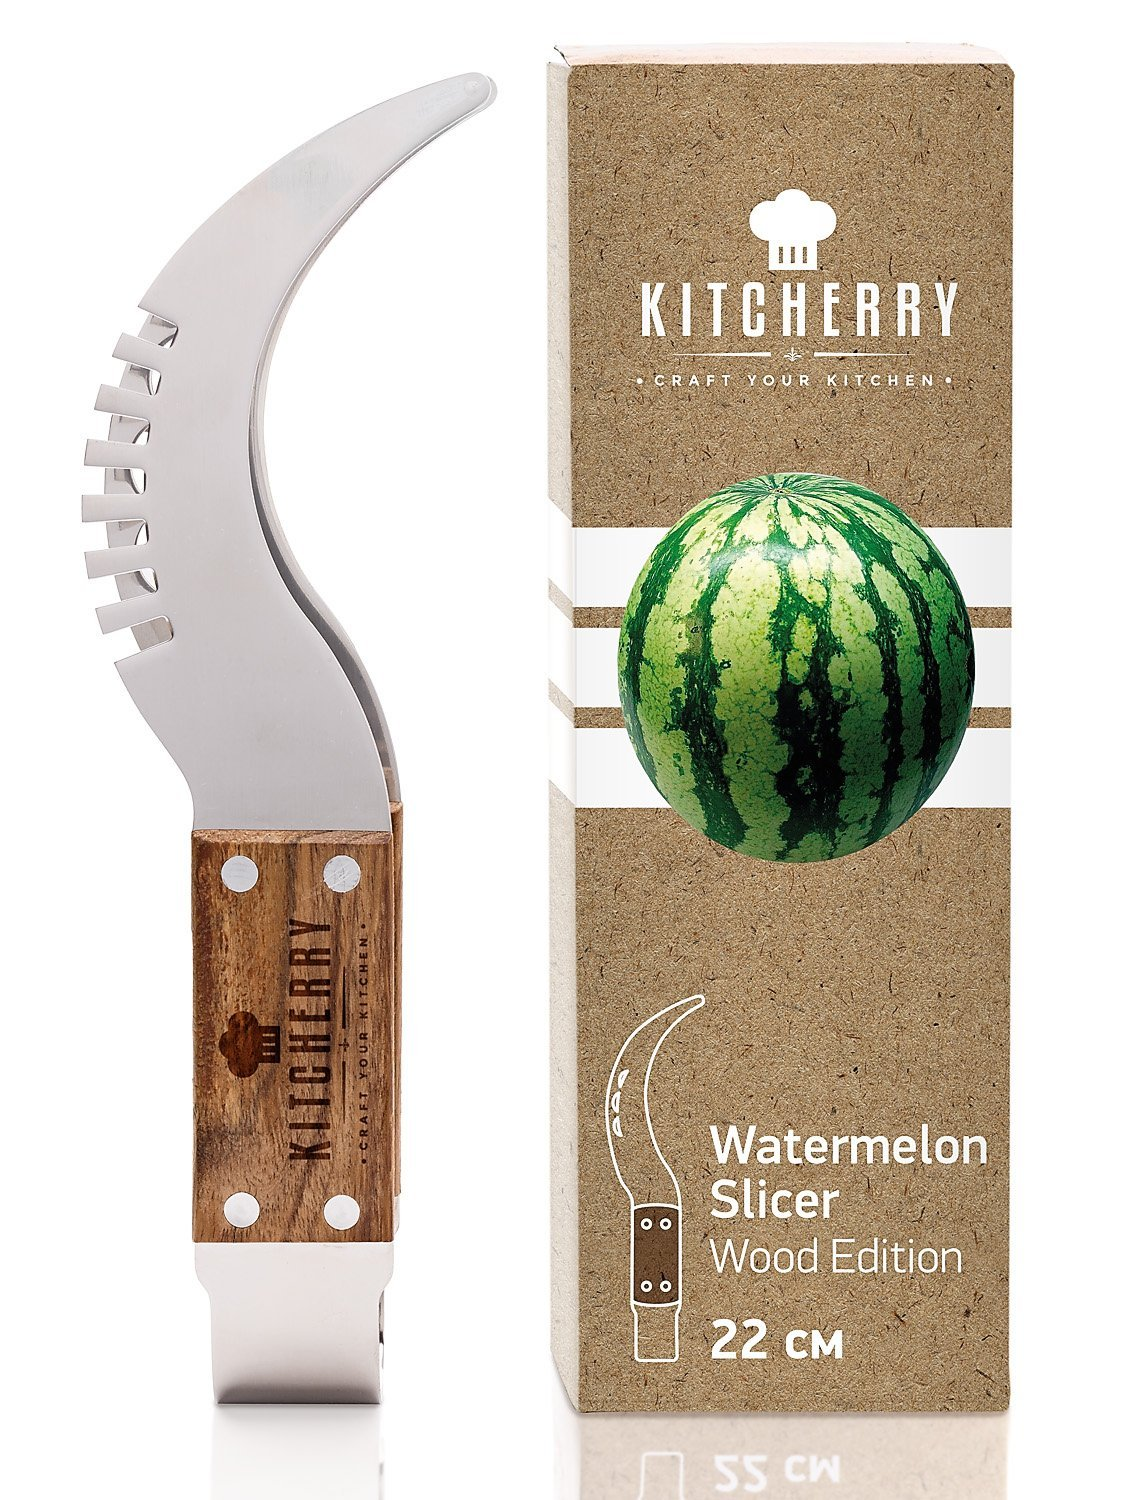 Kitcherry Watermelon Slicer with Wooden Handle, Corer & Server, Durable Stainless Steel 430 with Sturdy Cutting Wire KCHRYWSW